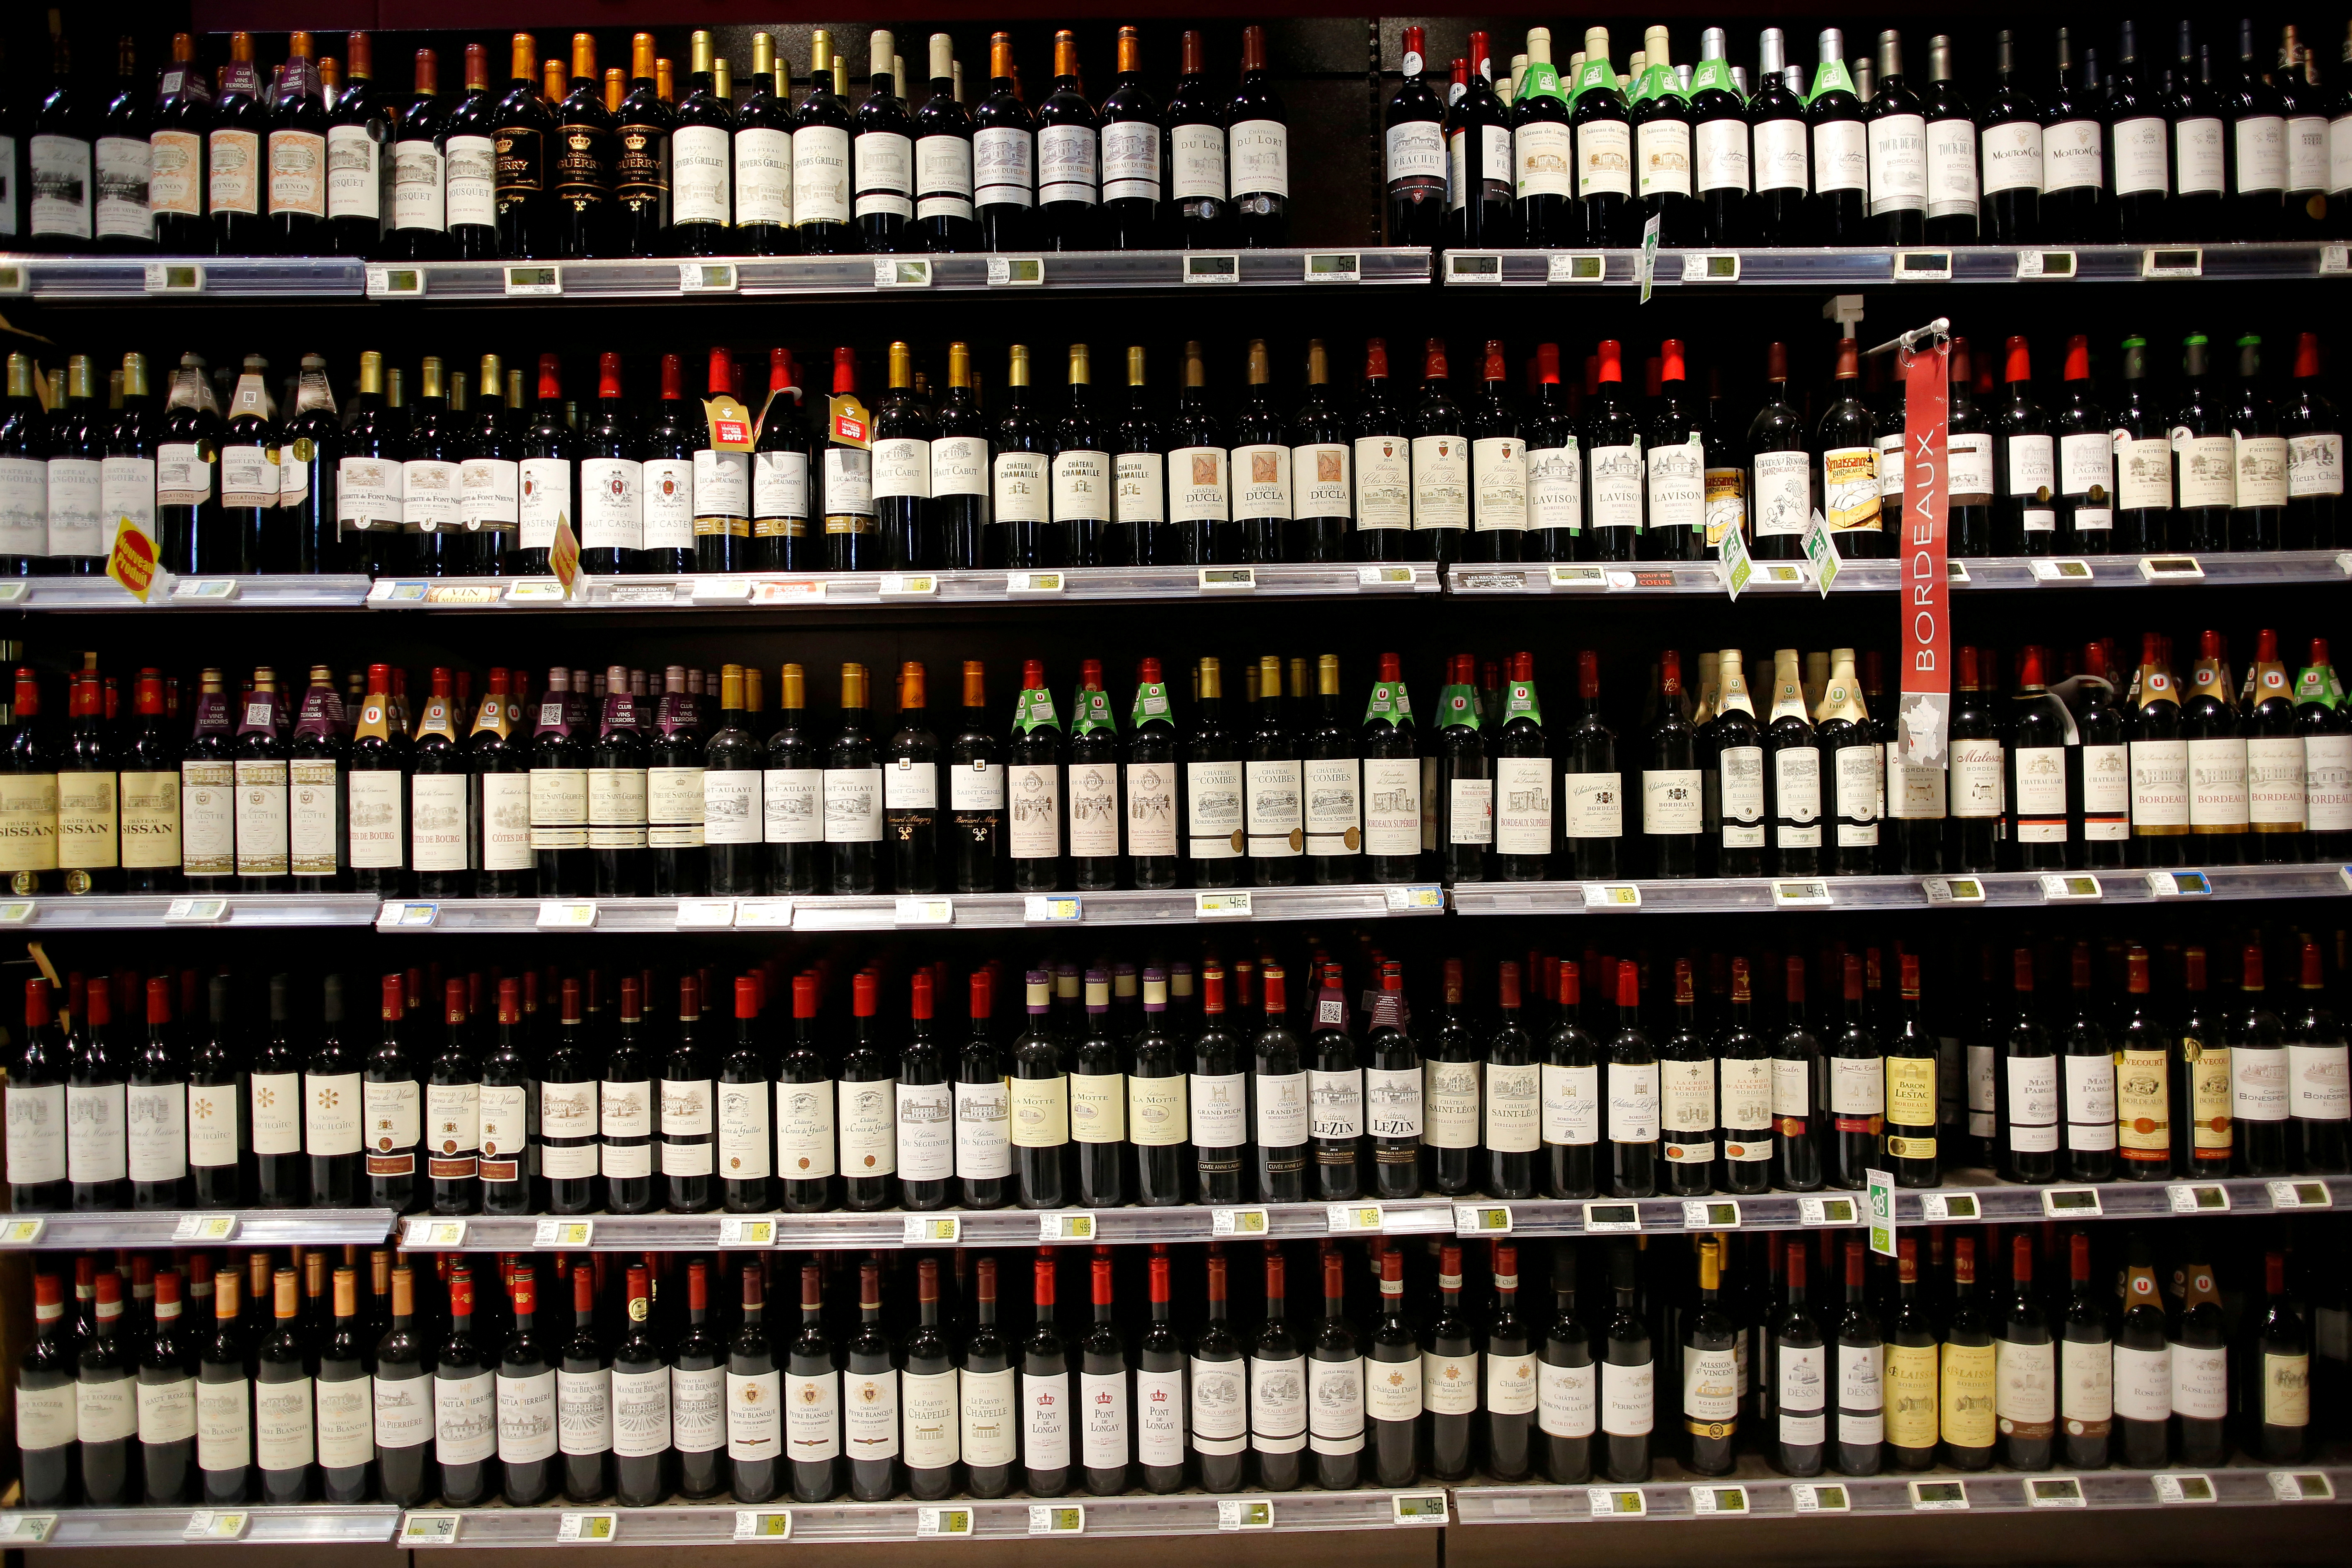 Bottles of French wine are displayed for sale in a supermarket in Vertou, near Nantes, France, June 20, 2017.   REUTERS/Stephane Mahe